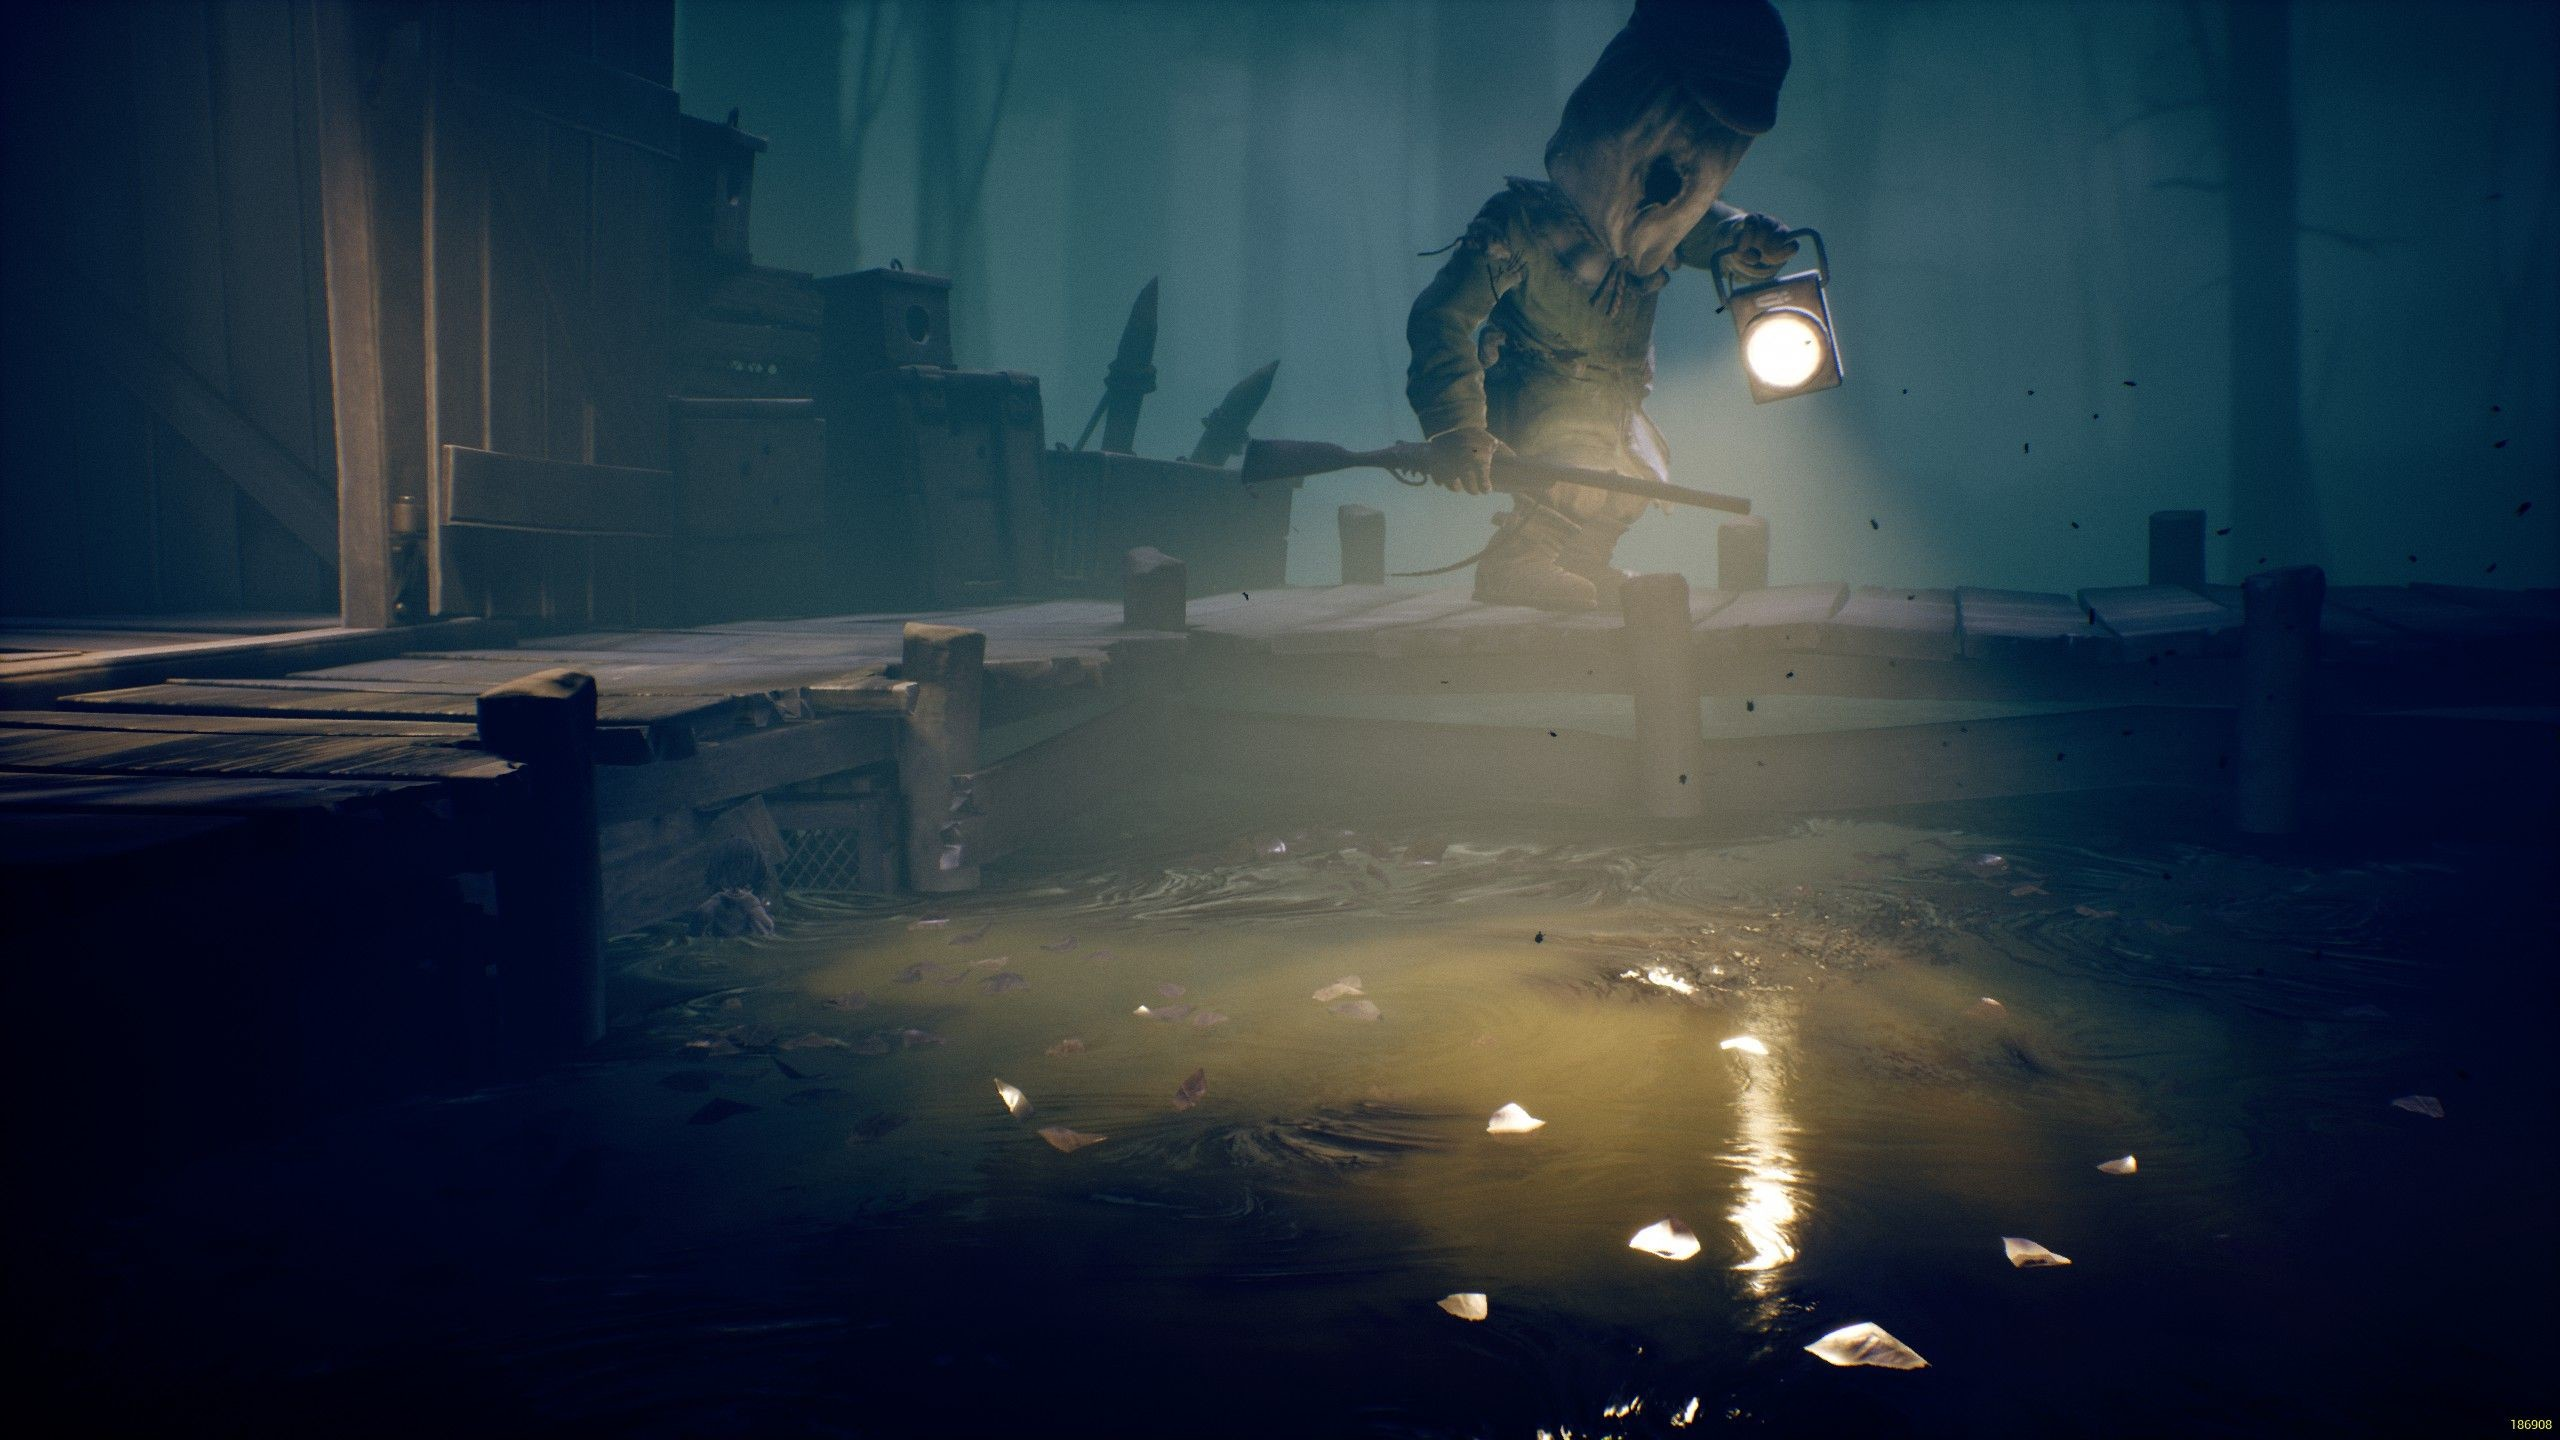 Превью Little Nightmares 2. Кошмарики на воздушном шарике